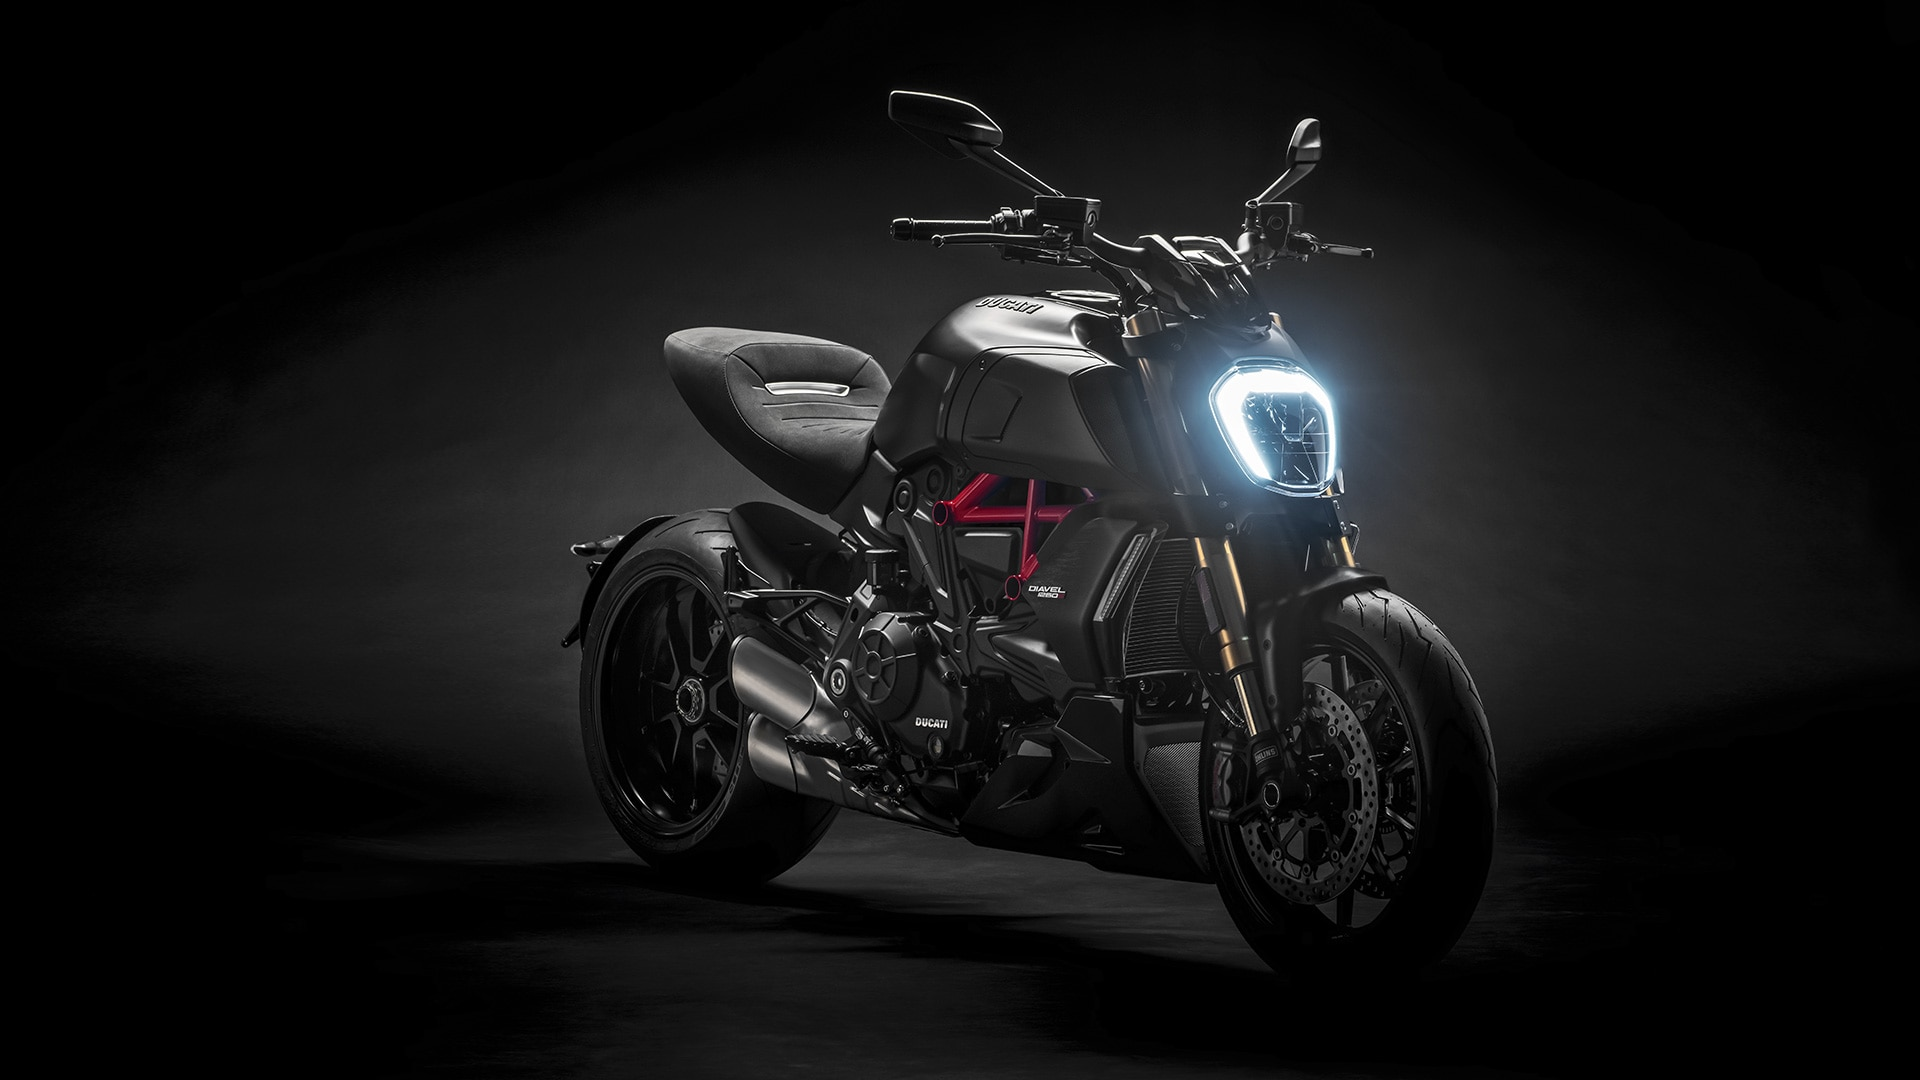 Ducati Diavel 1260 To Be Launched In India Soon